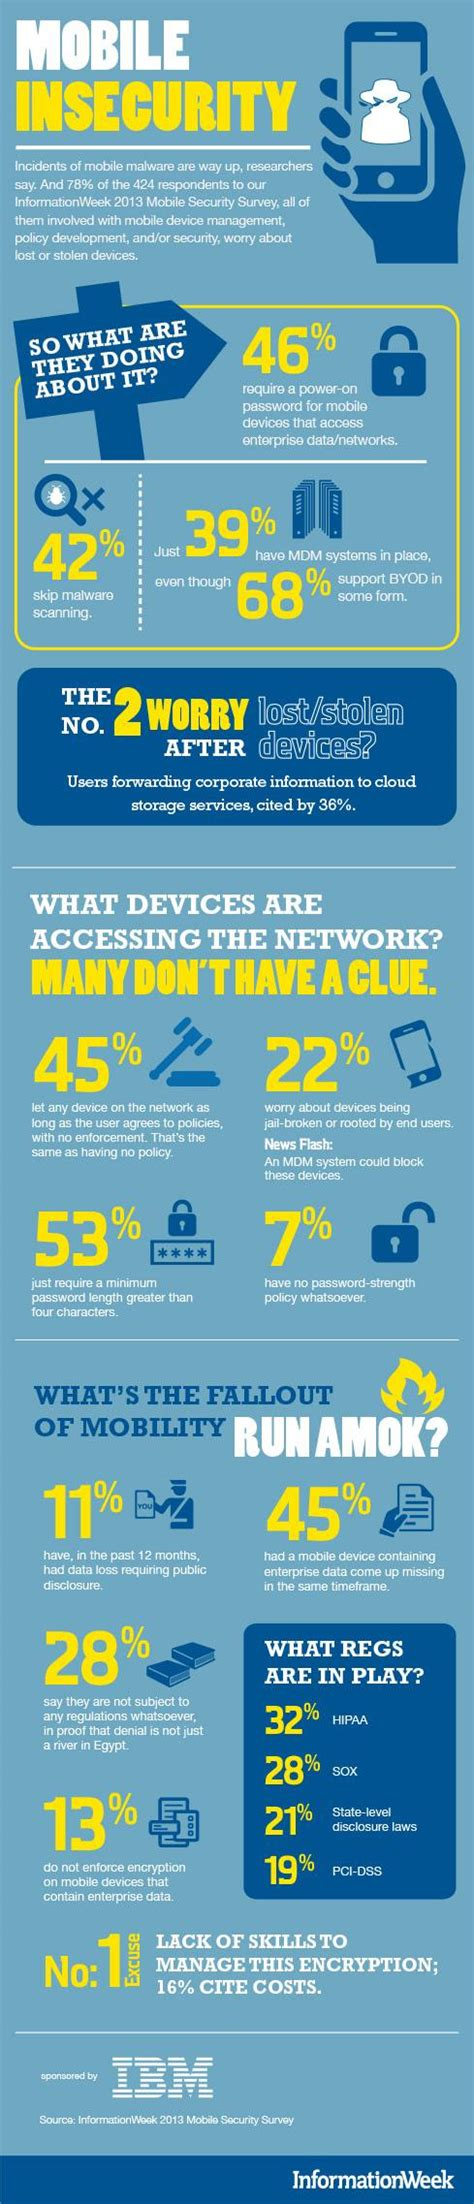 mobile device security management infographic mobile security run amok